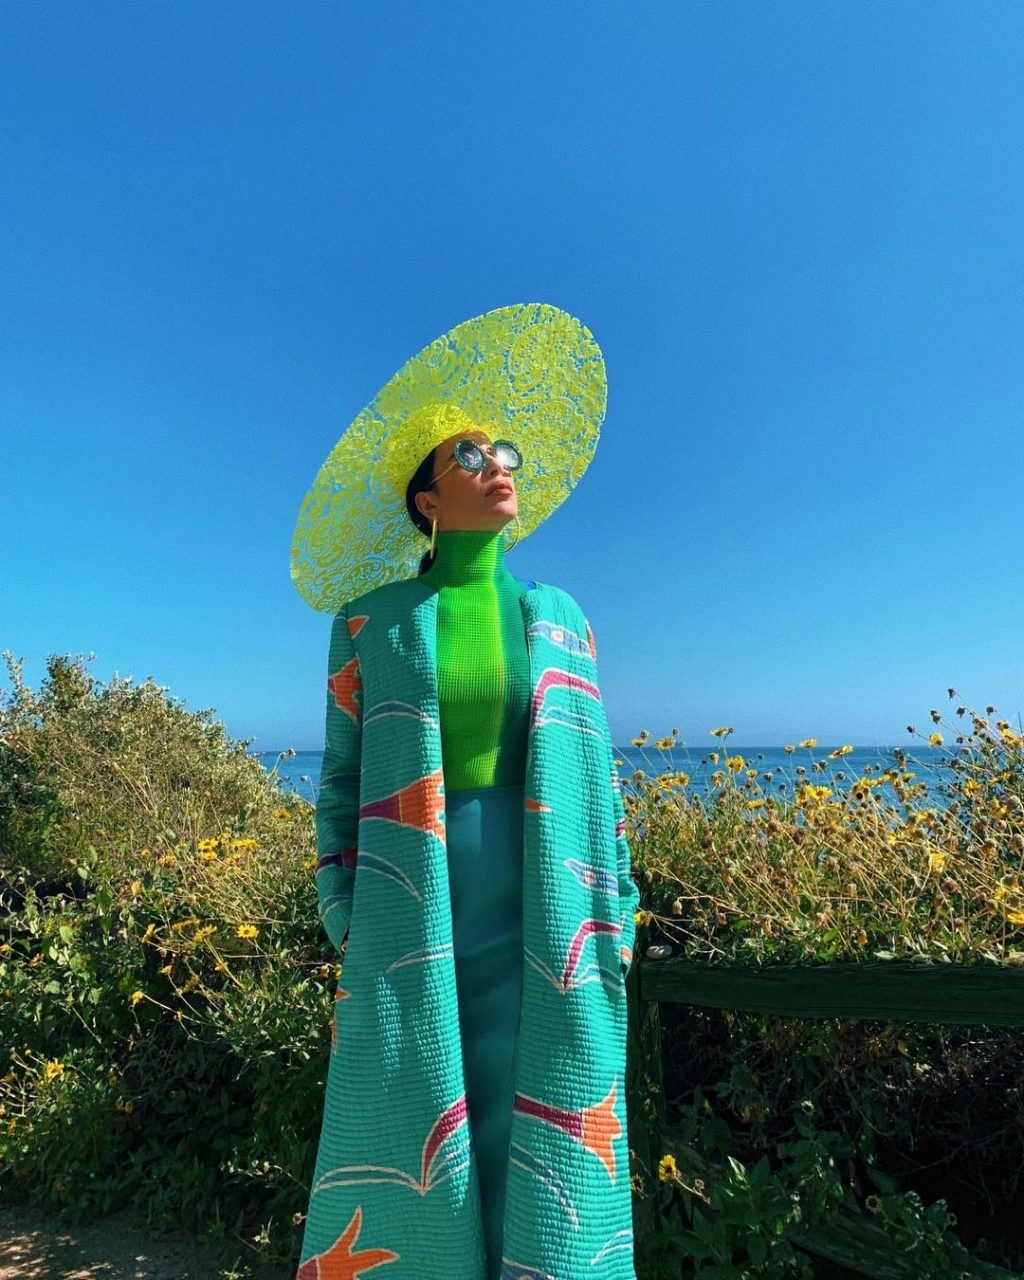 Sun Hats and Striking Suits – What Caught Our Eye on Instagram This Week